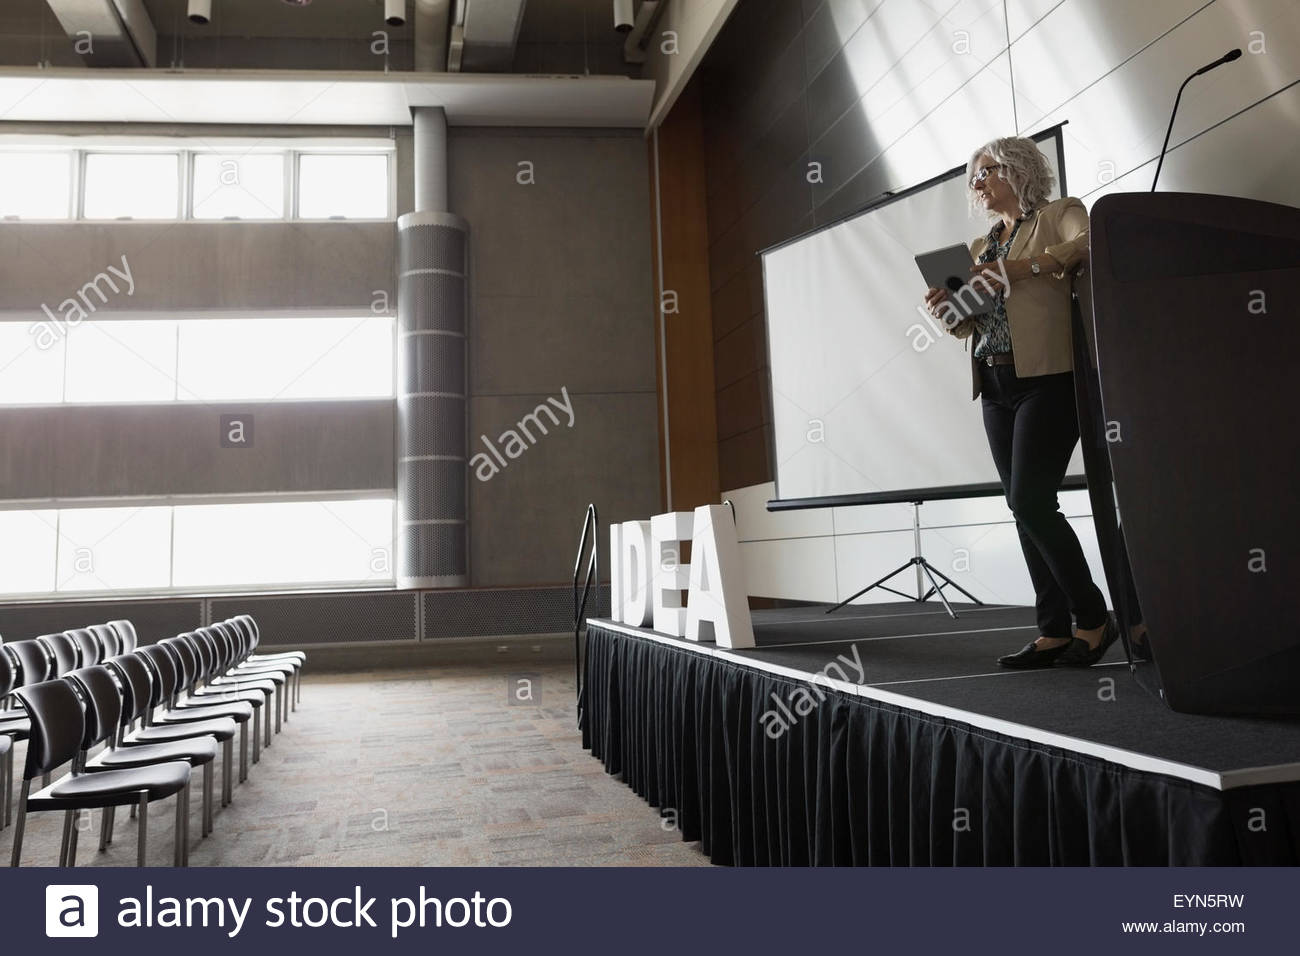 Woman with digital tablet on stage empty auditorium - Stock Image